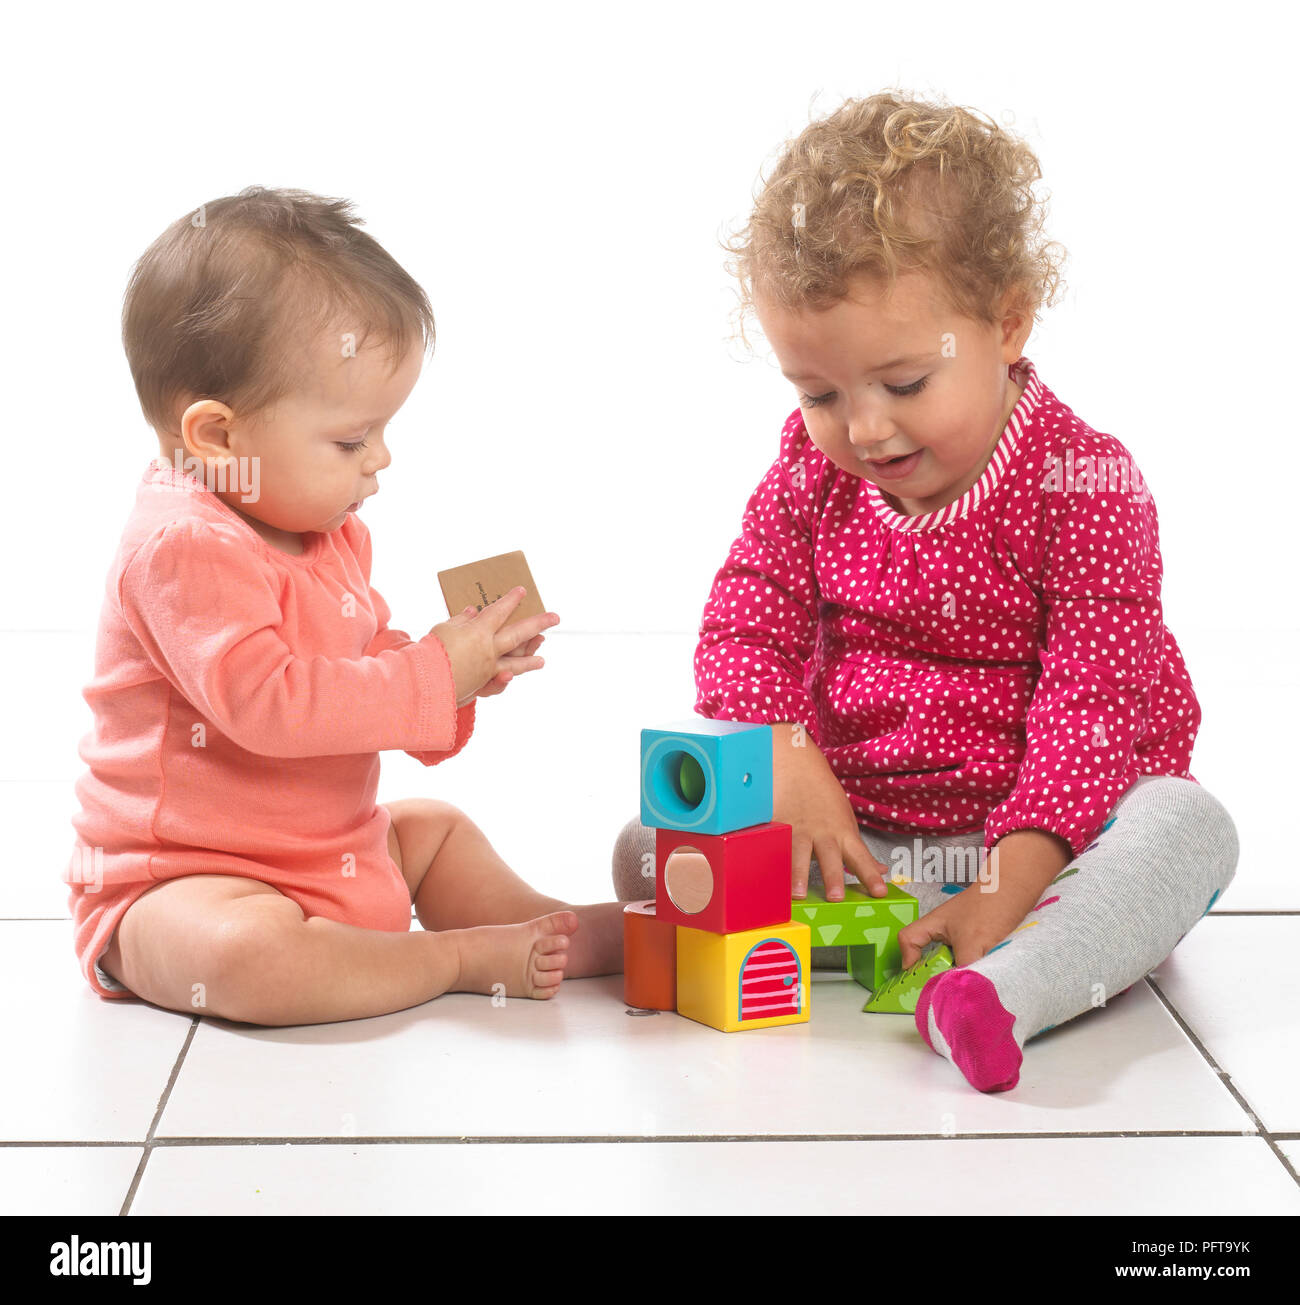 Baby girl (8 months) and toddler girl (2 years) sitting playing with building blocks - Stock Image